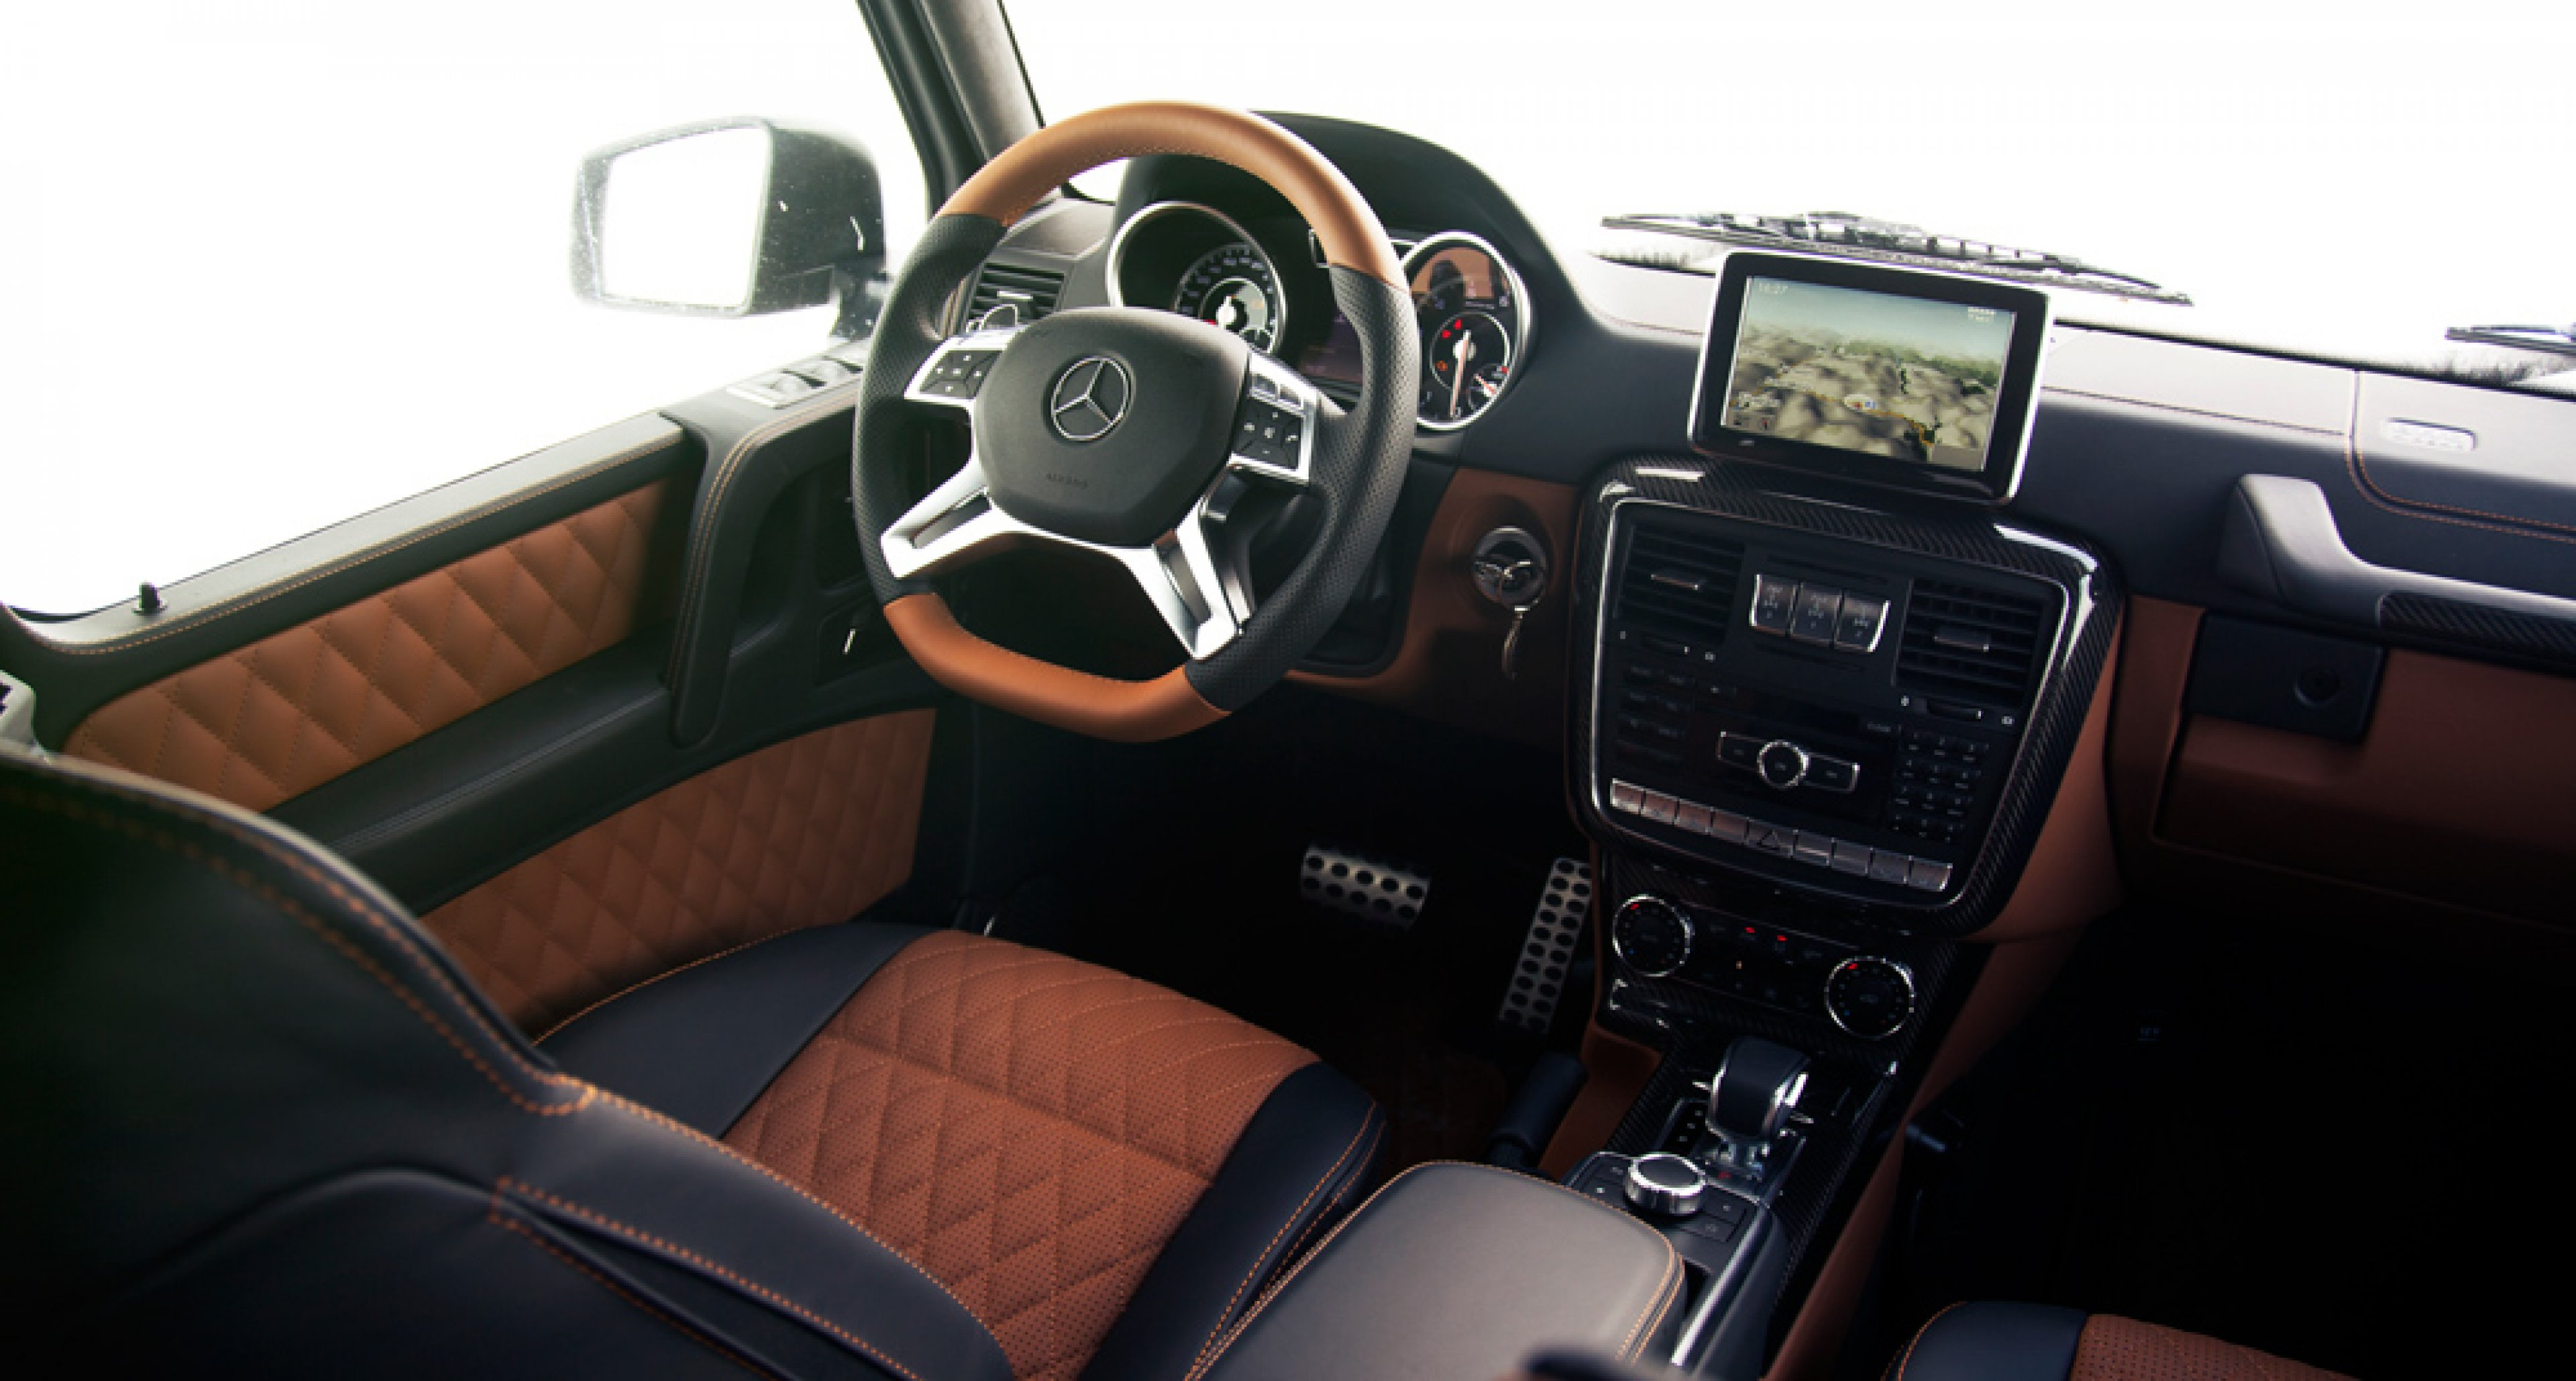 Mercedes benz g63 amg 6x6 when too much is not enough for How much is a mercedes benz g63